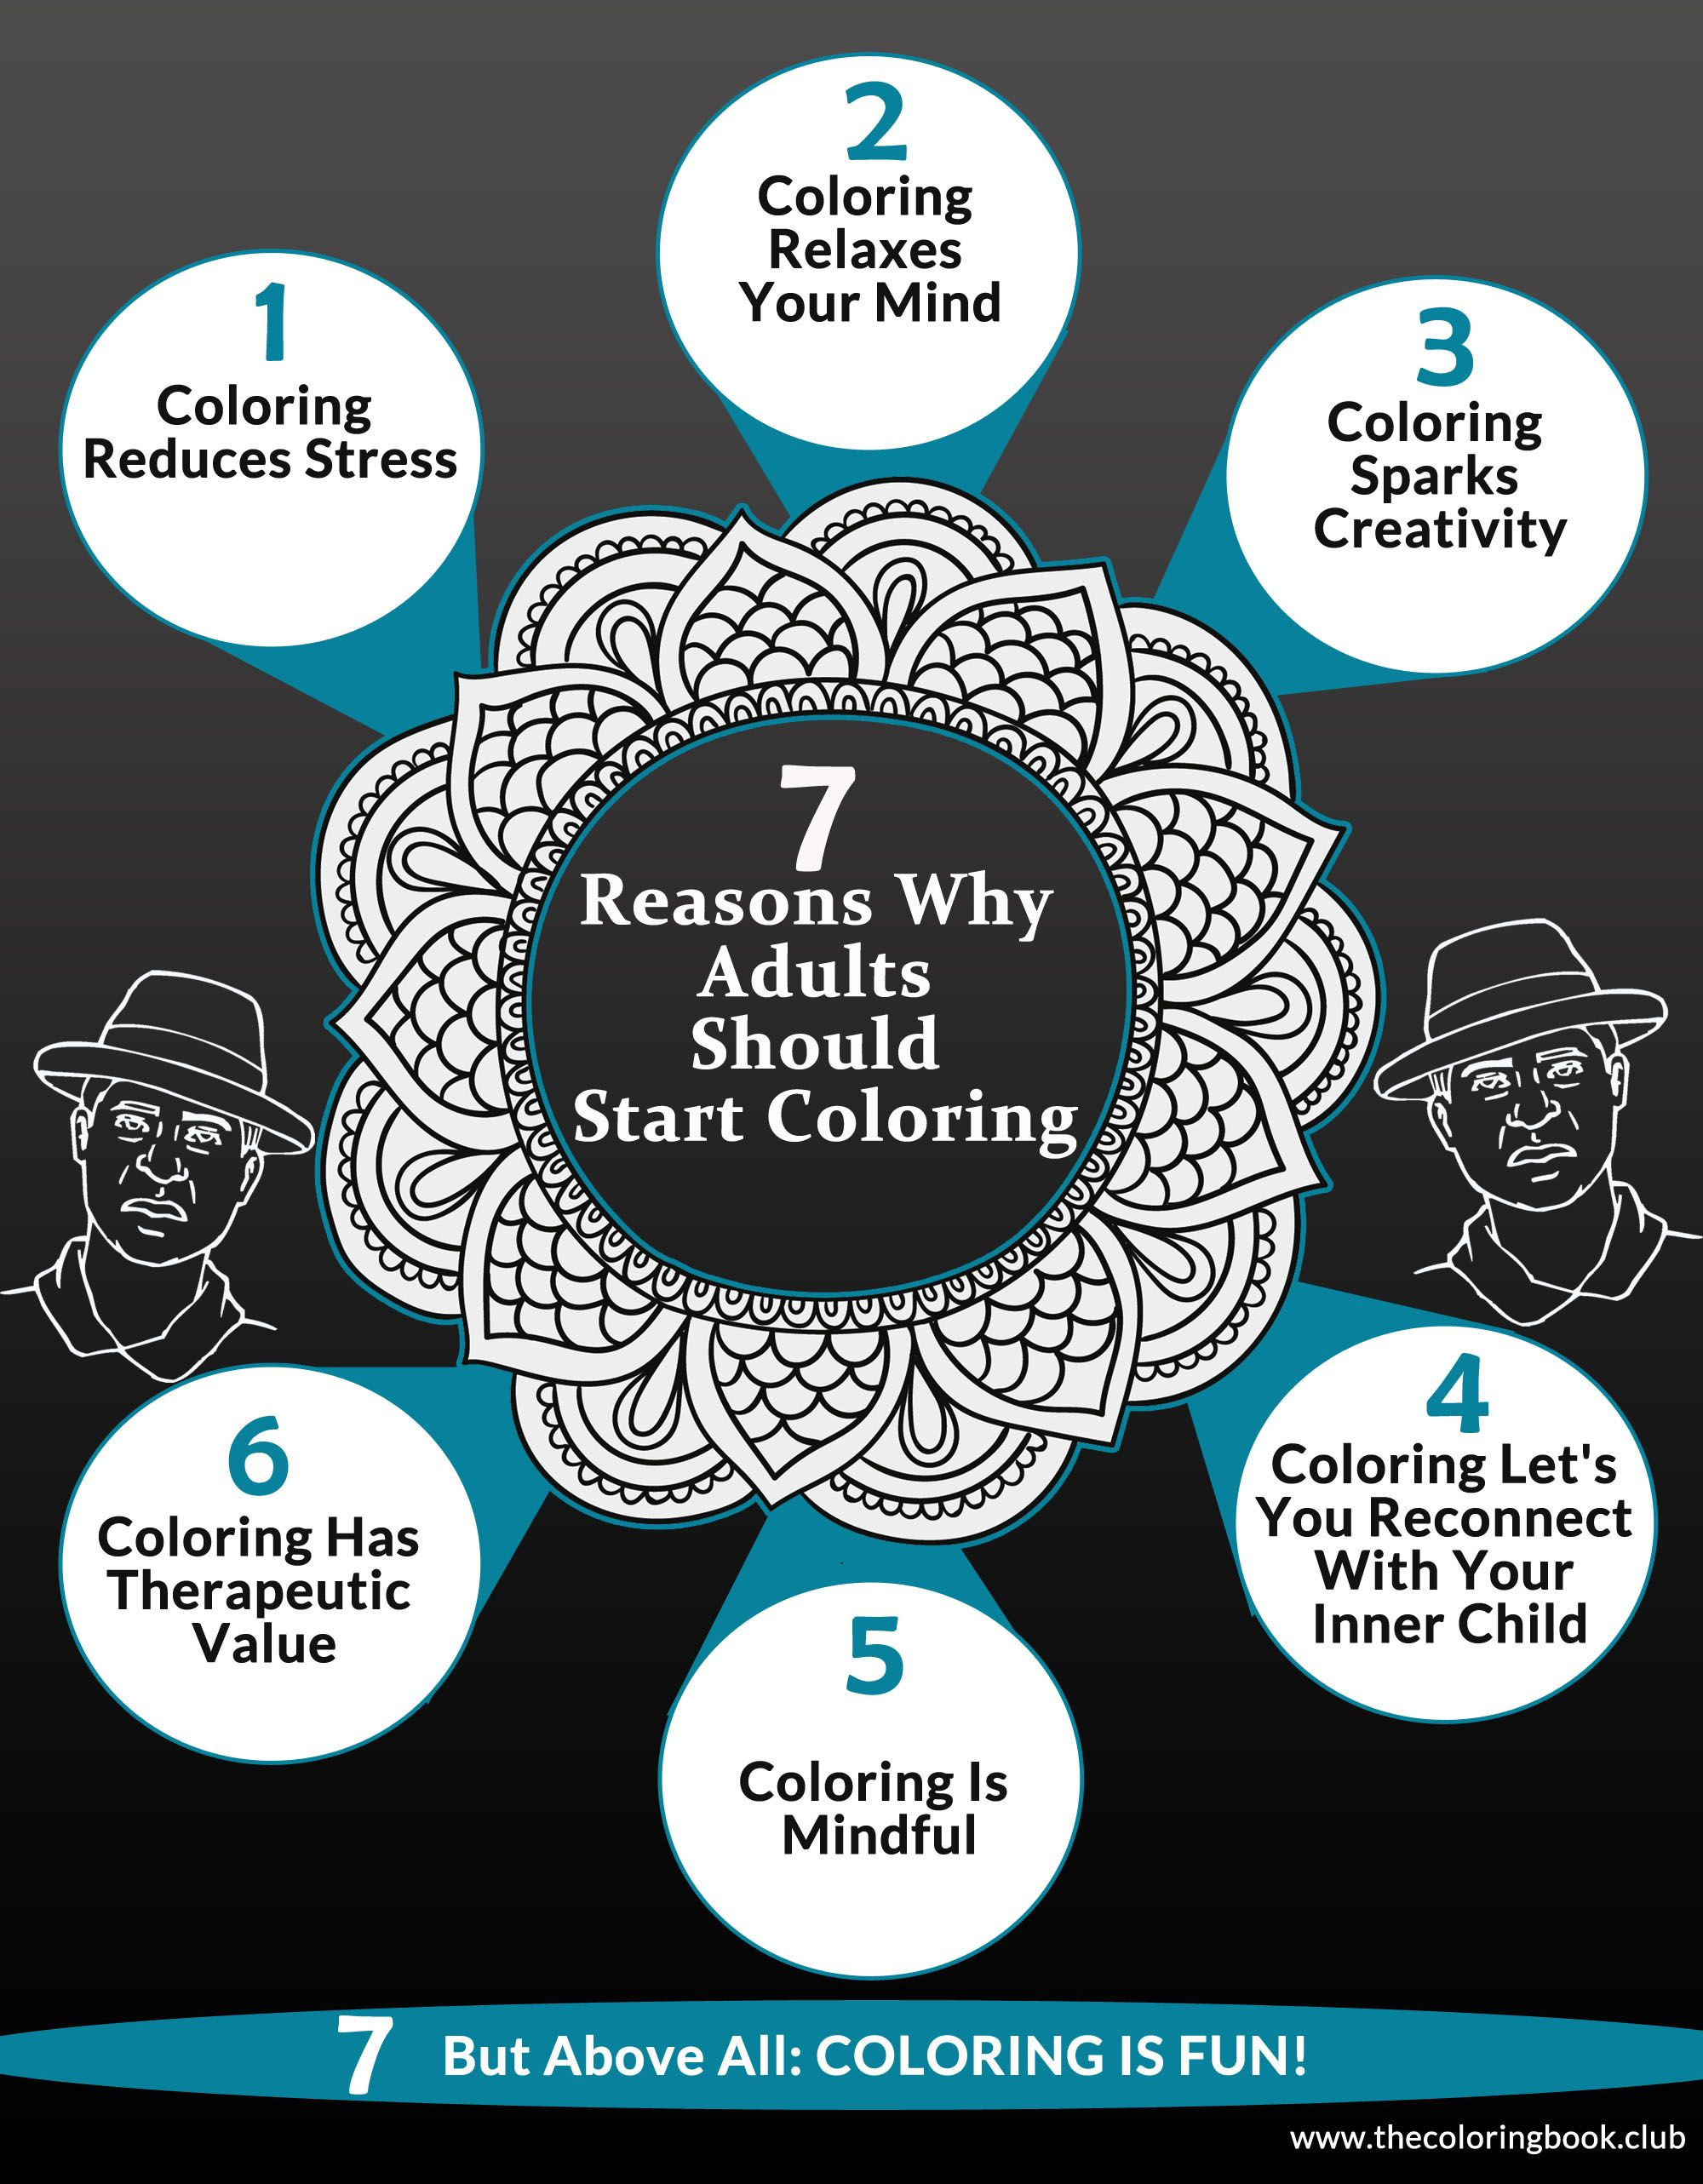 Coloring books to destress - Adults Love Coloring Books And For Good Reasons Coloring Has Many Benefits For